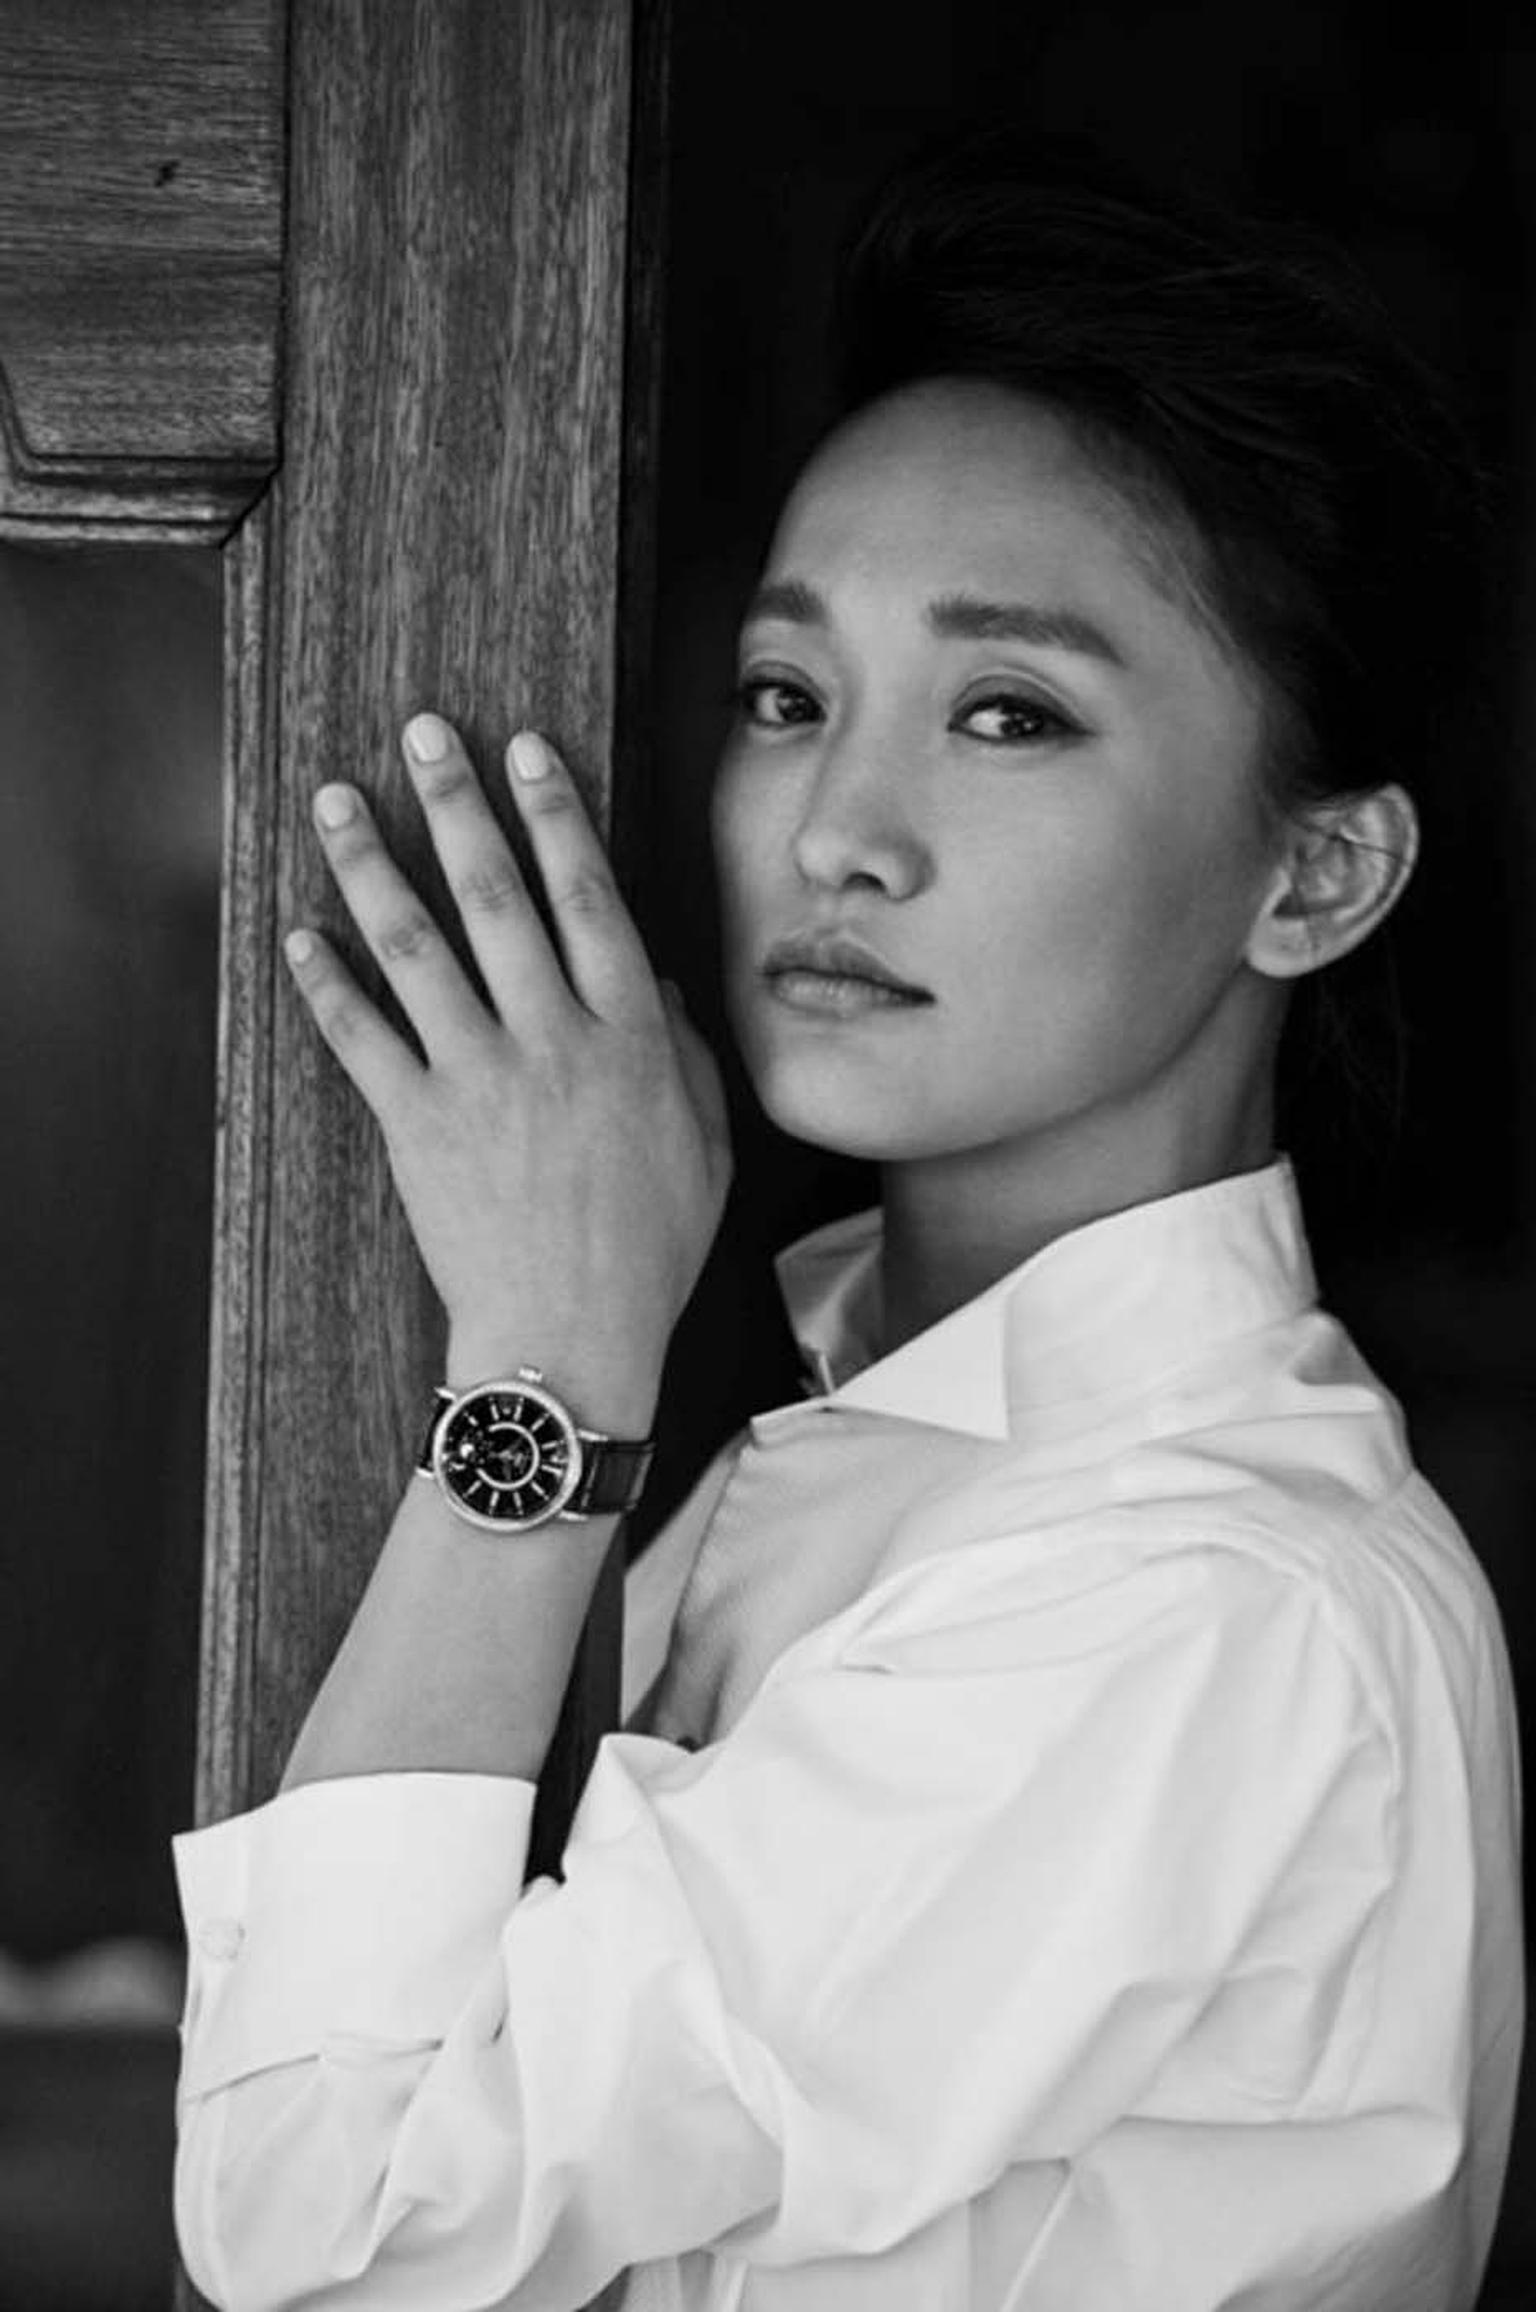 Zhou Xun wearing the IWC Portofino Midsize Automatic Moon Phase watch with a black mother-of-pearl dial and an alligator strap.